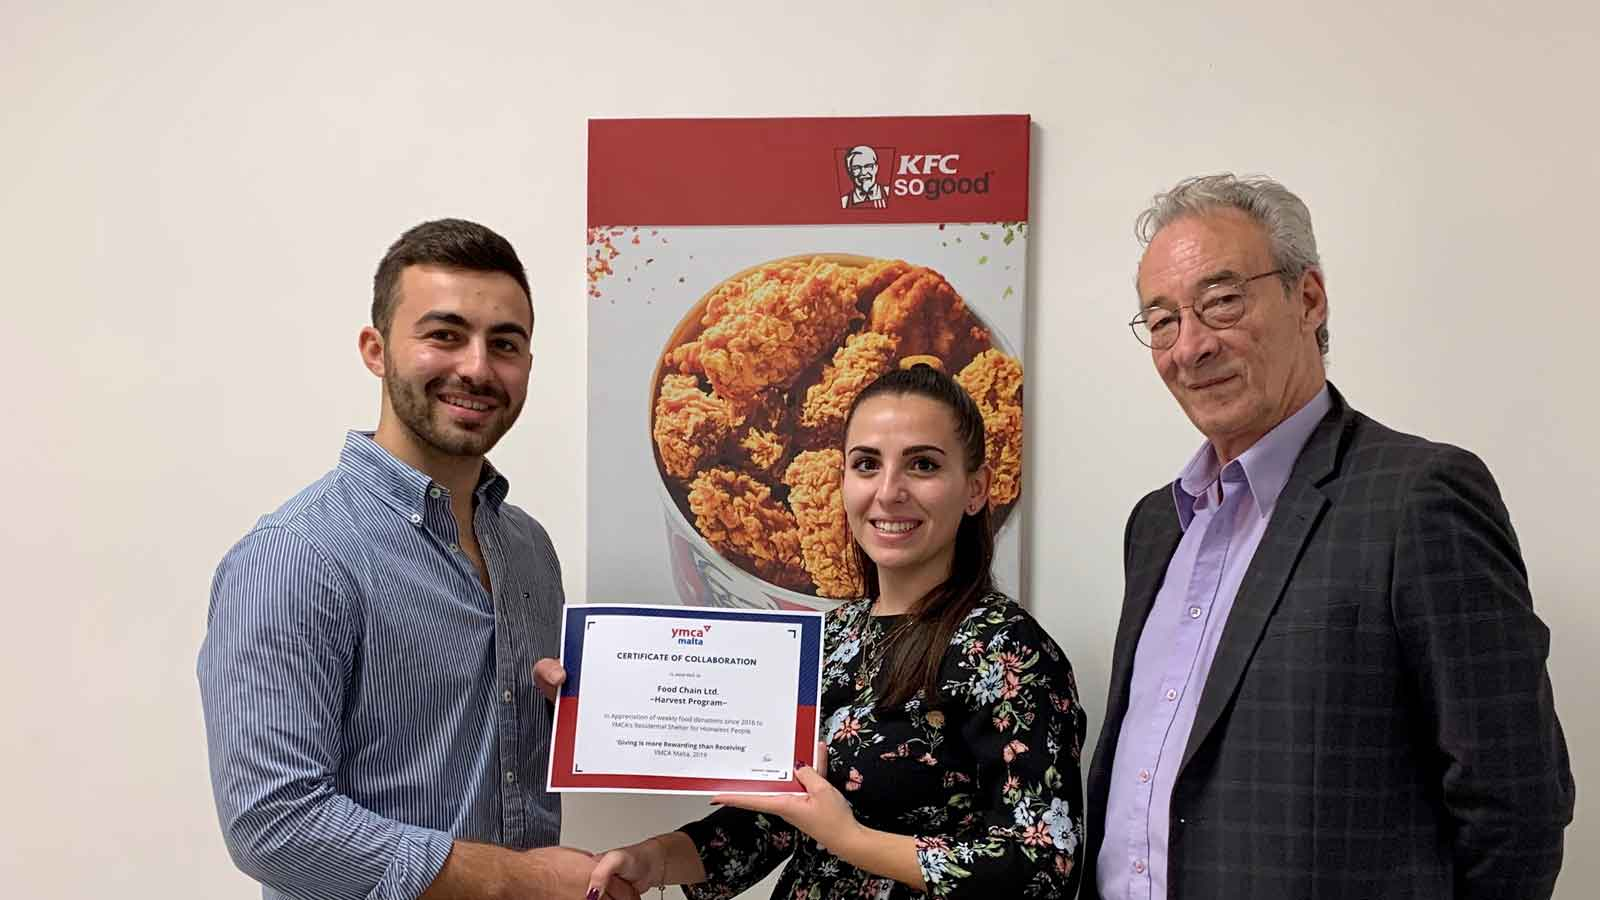 YMCA homeless shelter Dar Niki Cassar supported by KFC